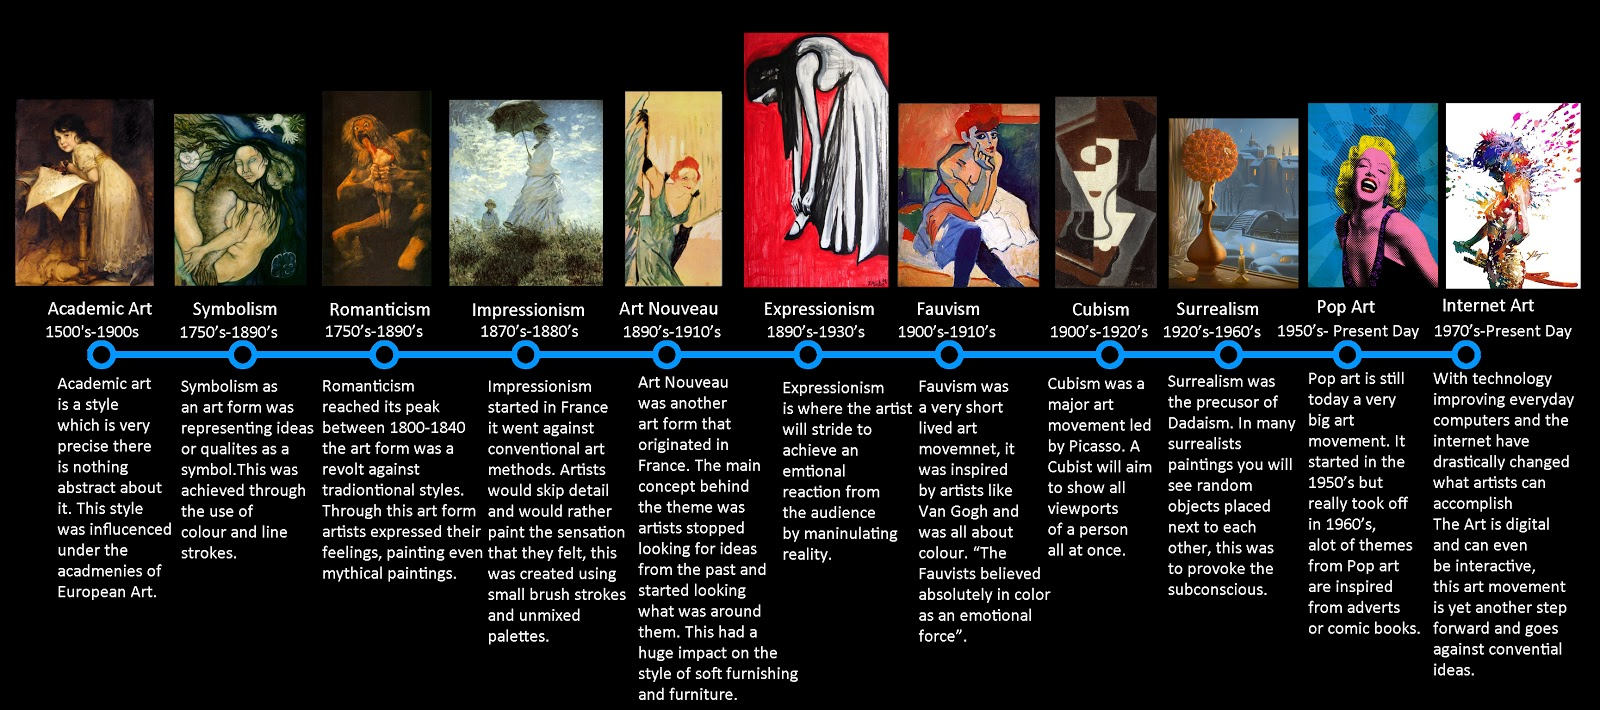 Mcnallys art classes art 2 art history and assignments this timeline generally outlines our study in art ii altavistaventures Image collections